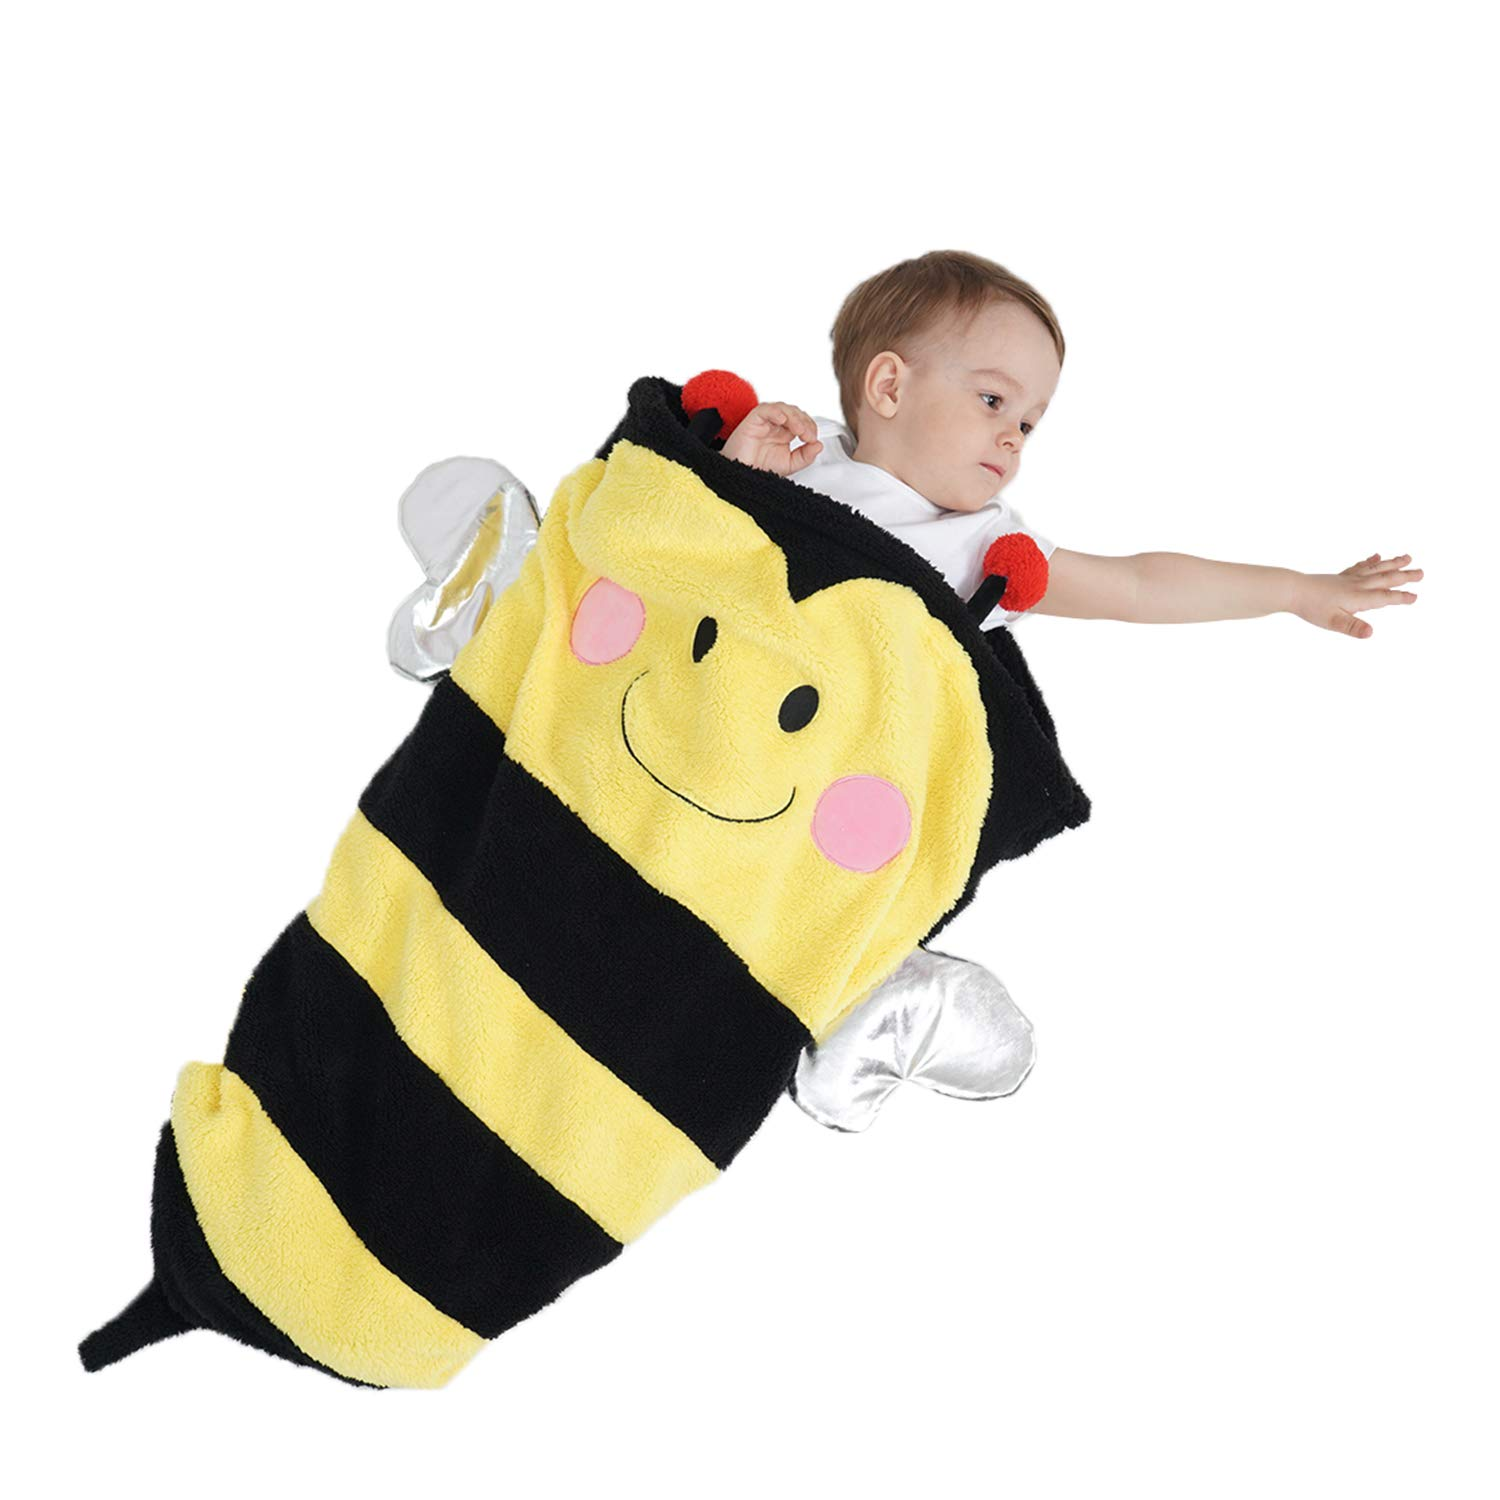 SINOGEM Bee Baby Blanket Toy - Lovely Plush Friendly Insects Bees Sleeping Bag for Sofa Couch Bed Travel Sleepovers Outdoor by SINOGEM